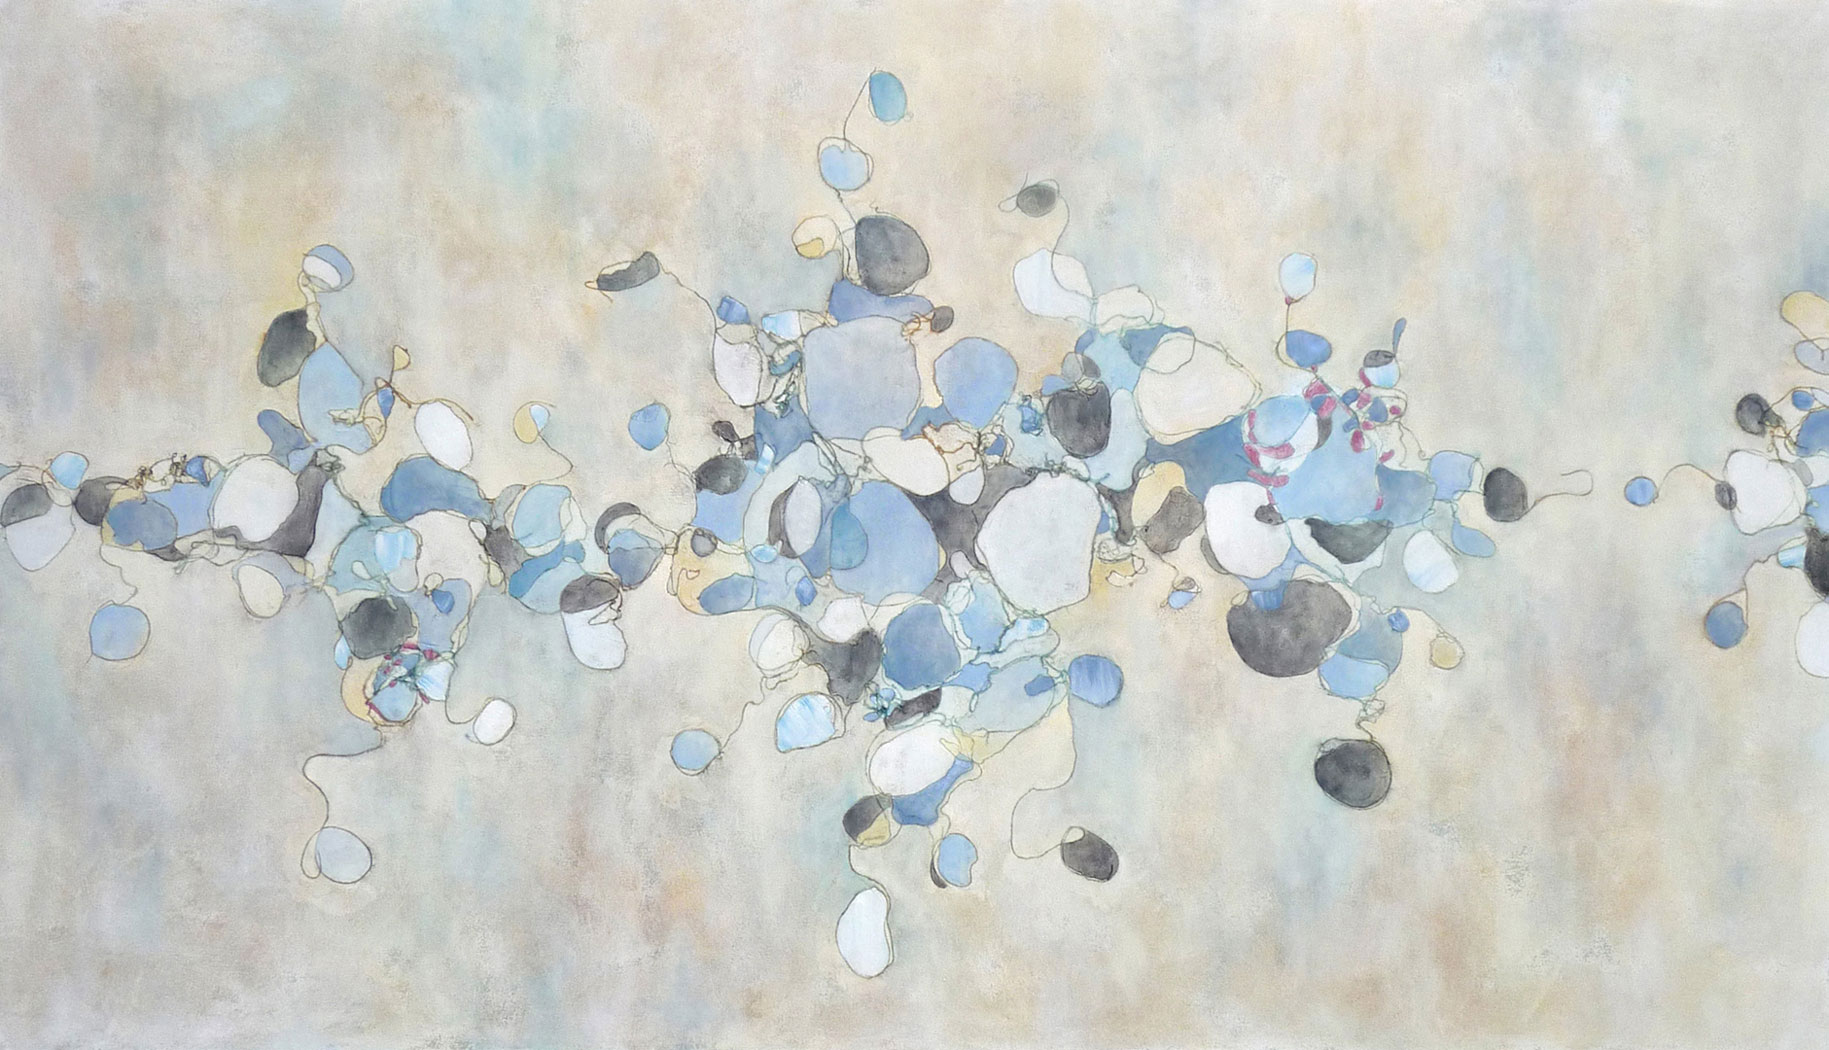 Blue White, 2009. Oil and collage on canvas. 48 x 84 inches (121.9x213.4 cm)